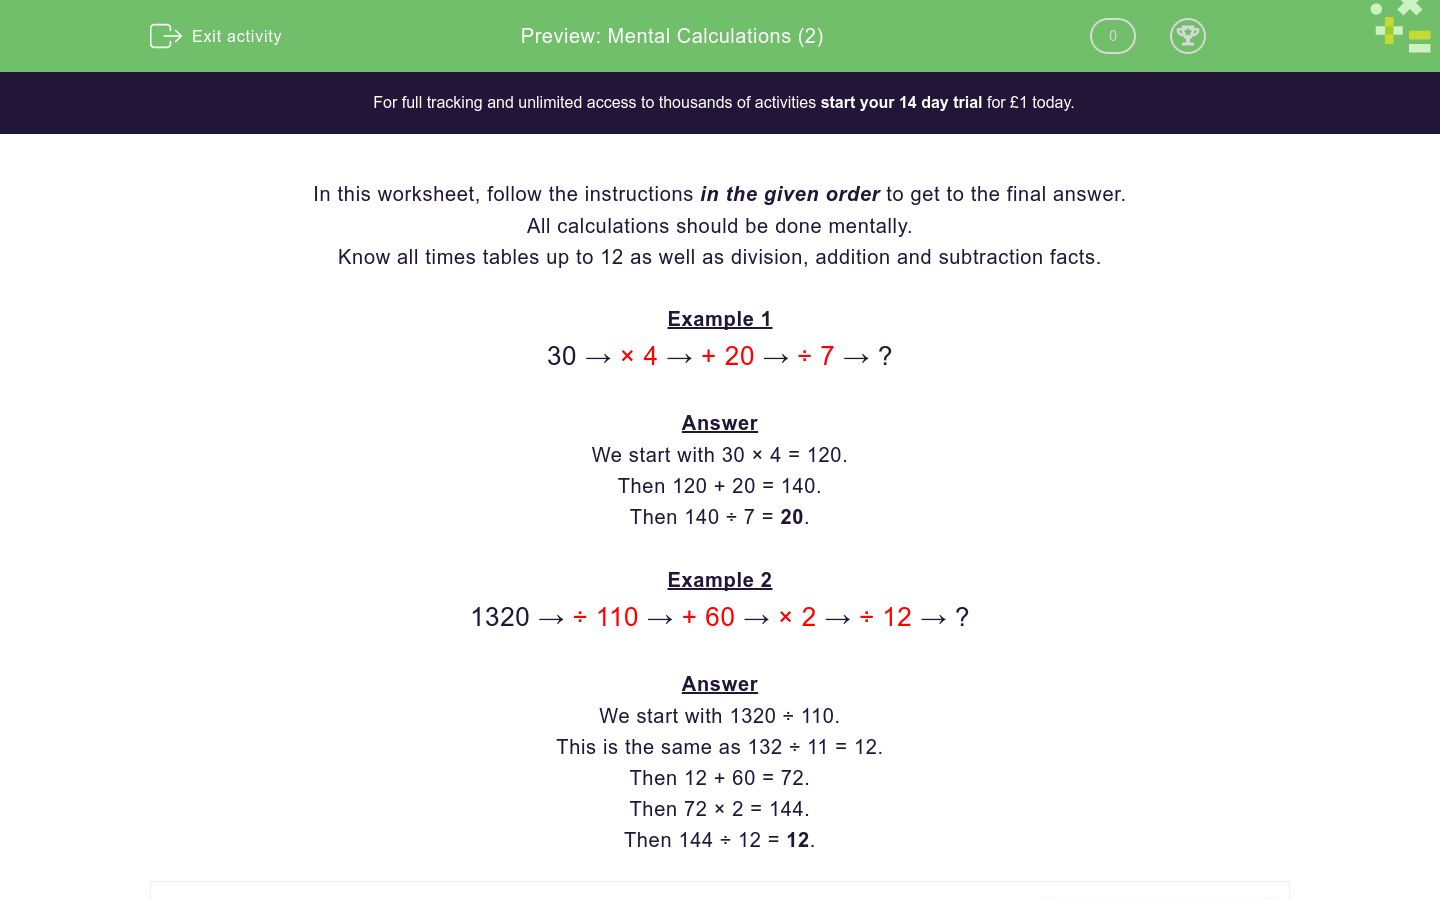 'Mental Calculations (2)' worksheet